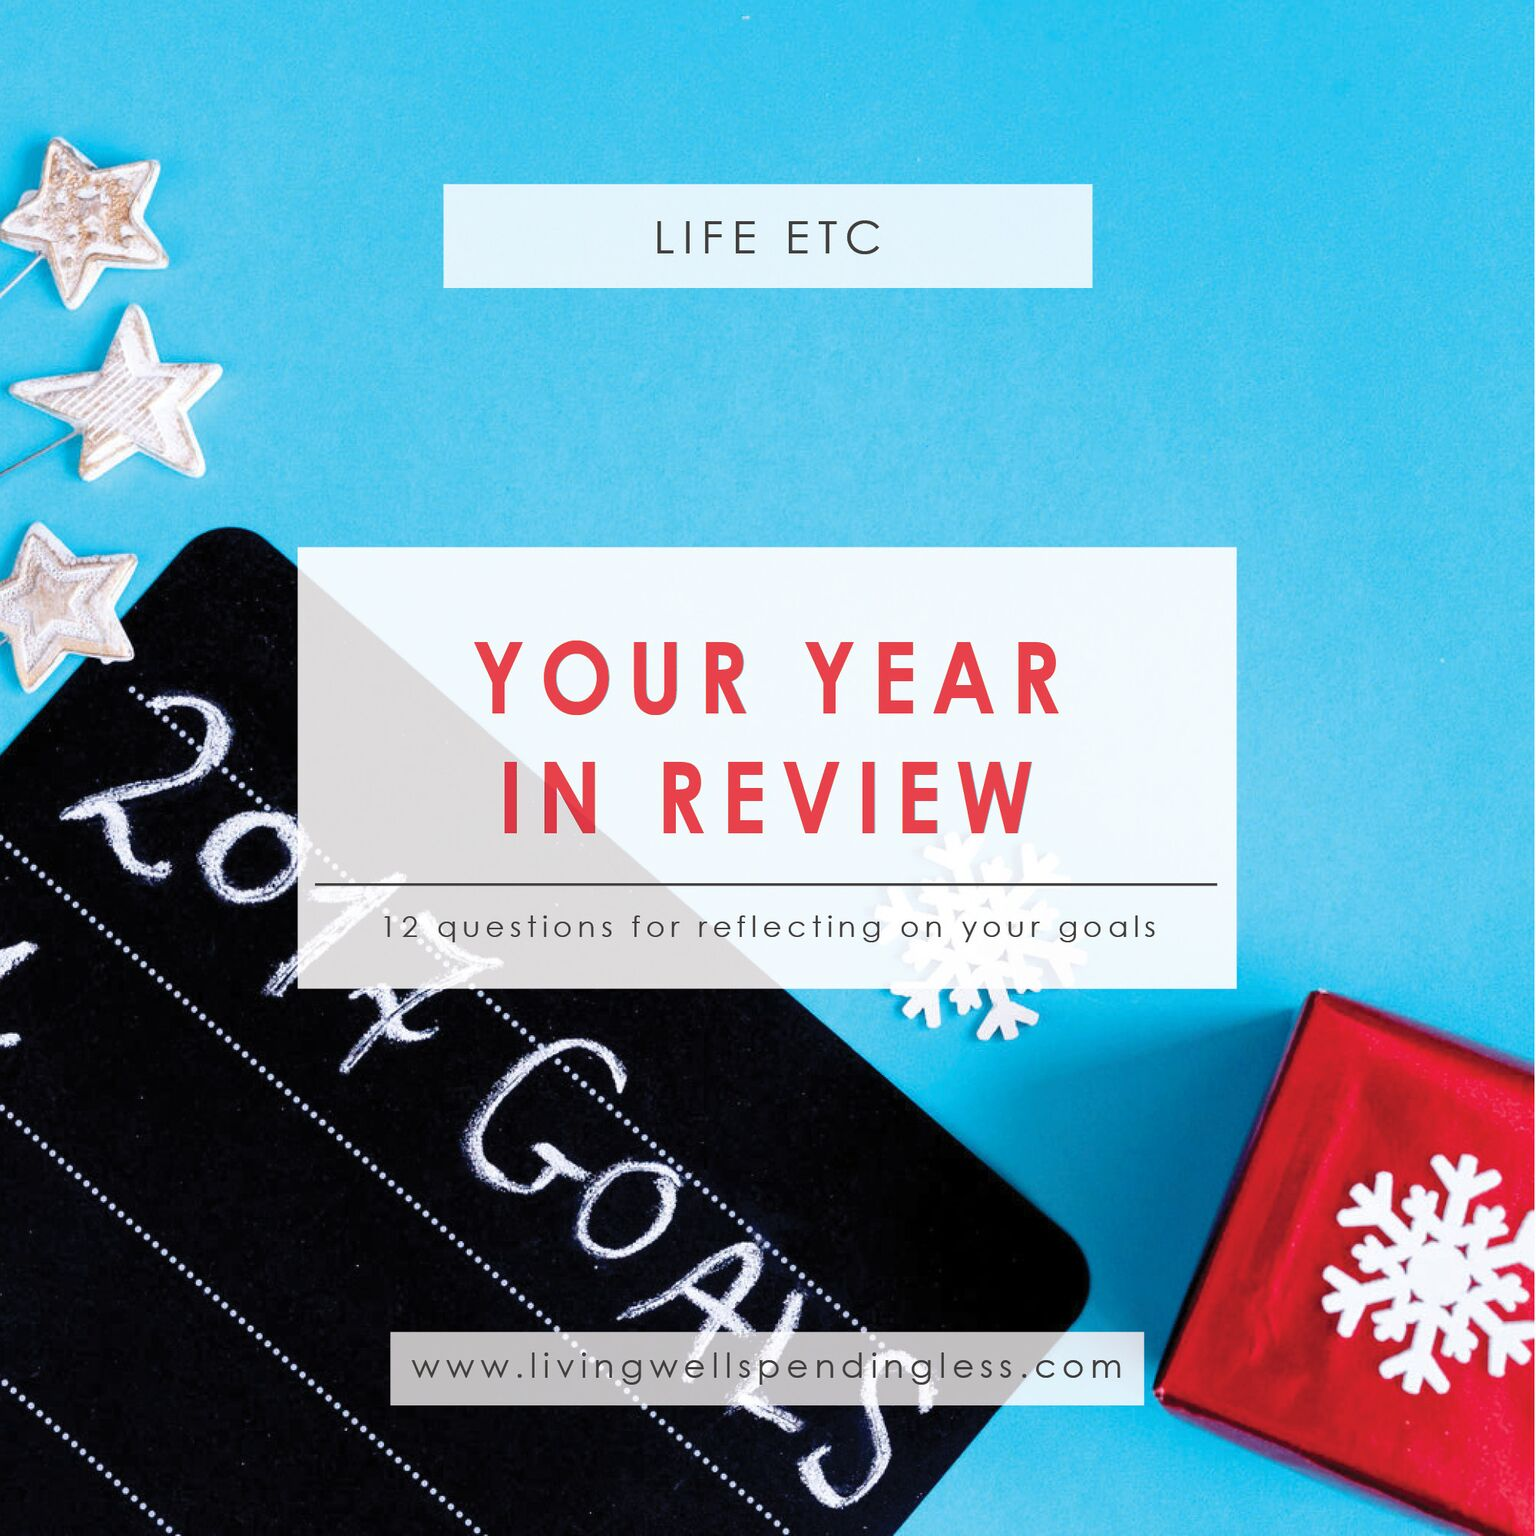 Your Year in Review⎢Goal Setting⎢Living Well Planner⎢Reflection Questions⎢Planning⎢New Year⎢Resolutions